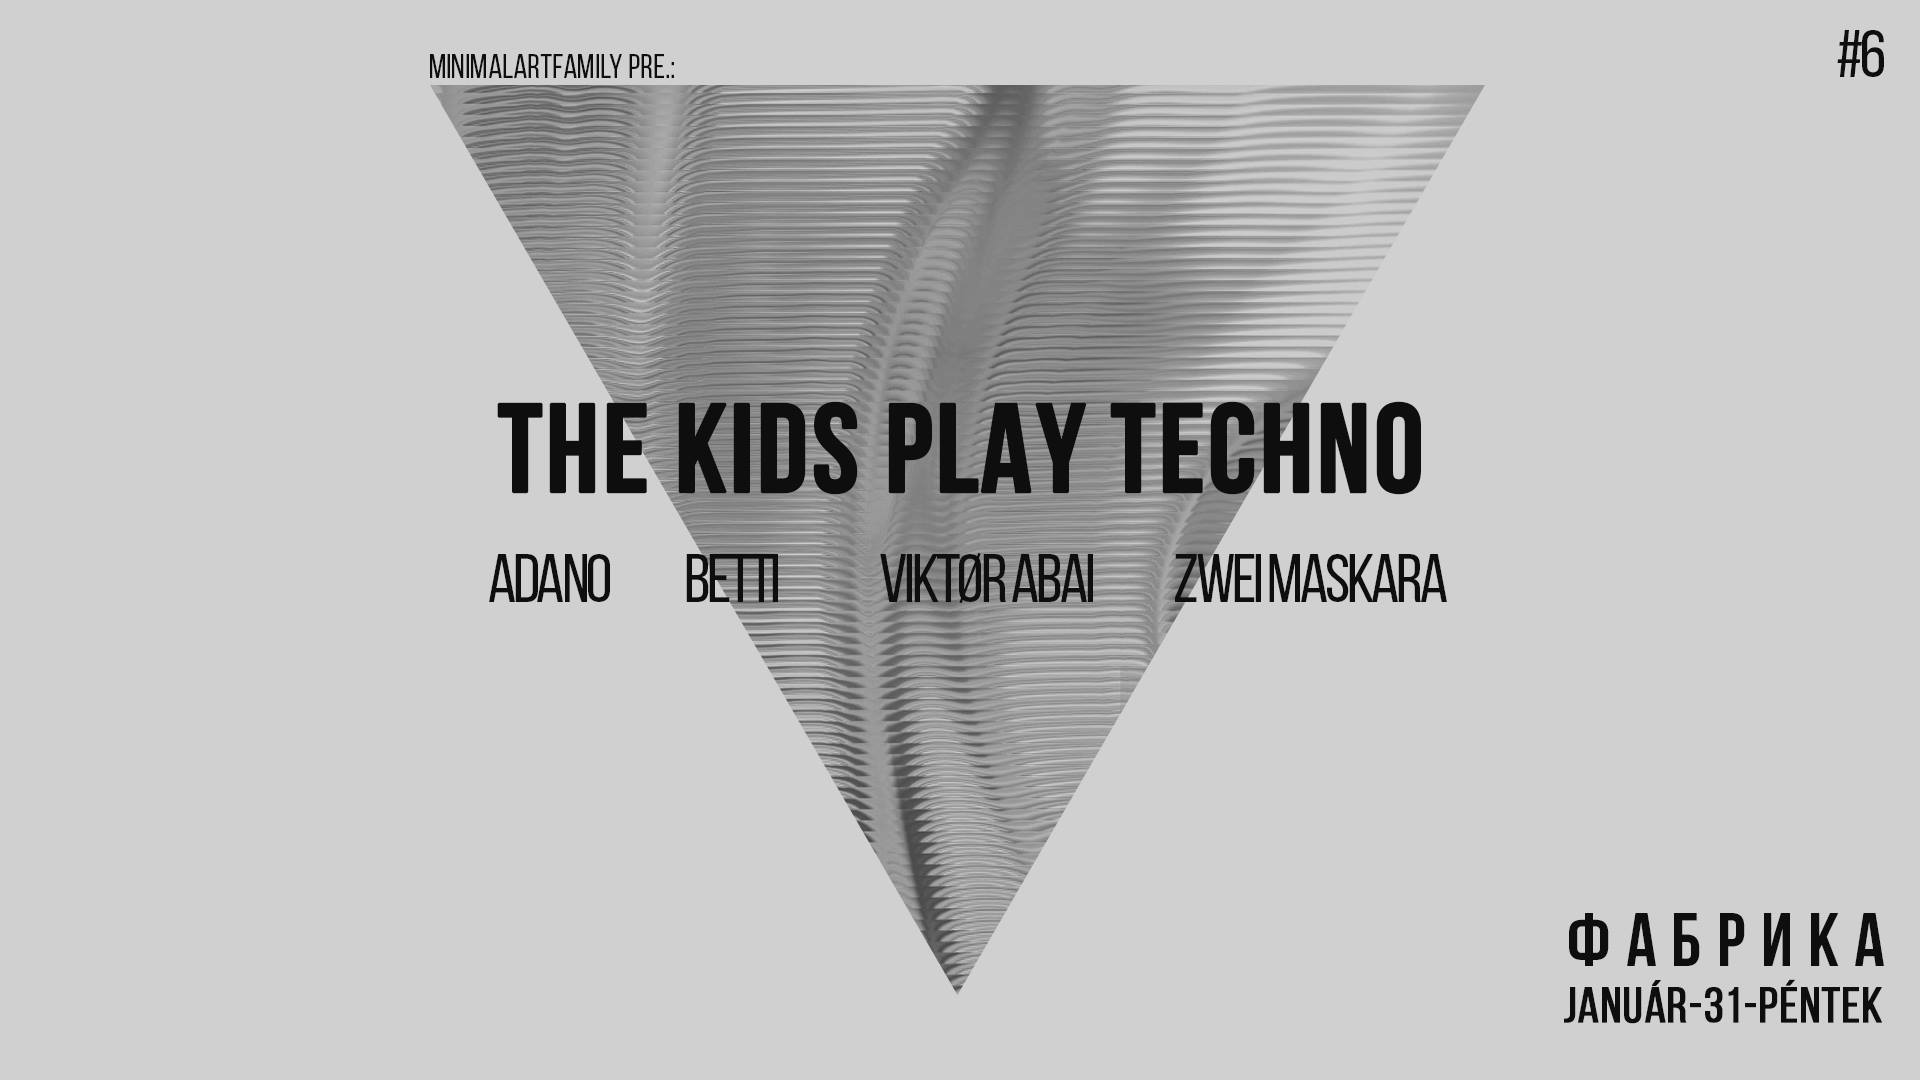 tkpt the kids play techno minimal art family maf techno house party illegal